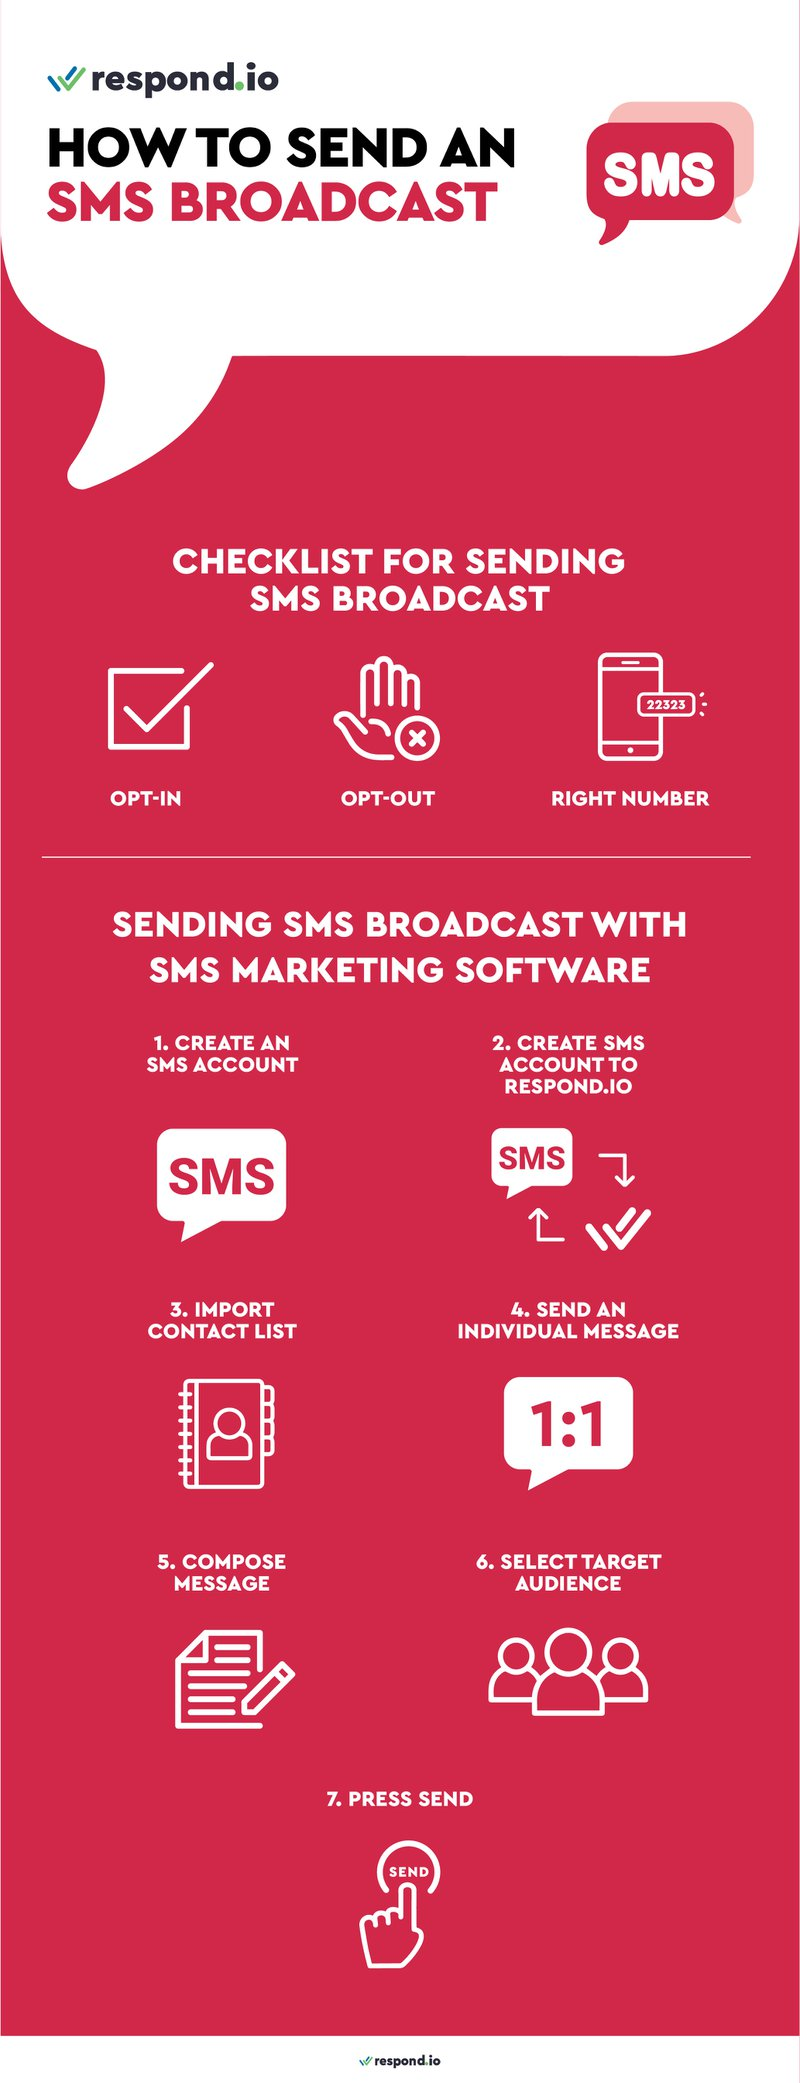 This is a picture of infographic about SMS marketing. Here, we'll list out the things to look out for when sending an SMS broadcast. Before sending bulk SMS, you should obtain your customer's SMS opt-in, double check if your customers have not opted- out, and make sure you are using the correct type of SMS number. SMS Providers don't provide a messaging console to send bulk SMS. Doing so requires a text message marketing software like respond.io. In this infographic, we provide a step-by-step guide to sending SMS broadcast with SMS marketing software.